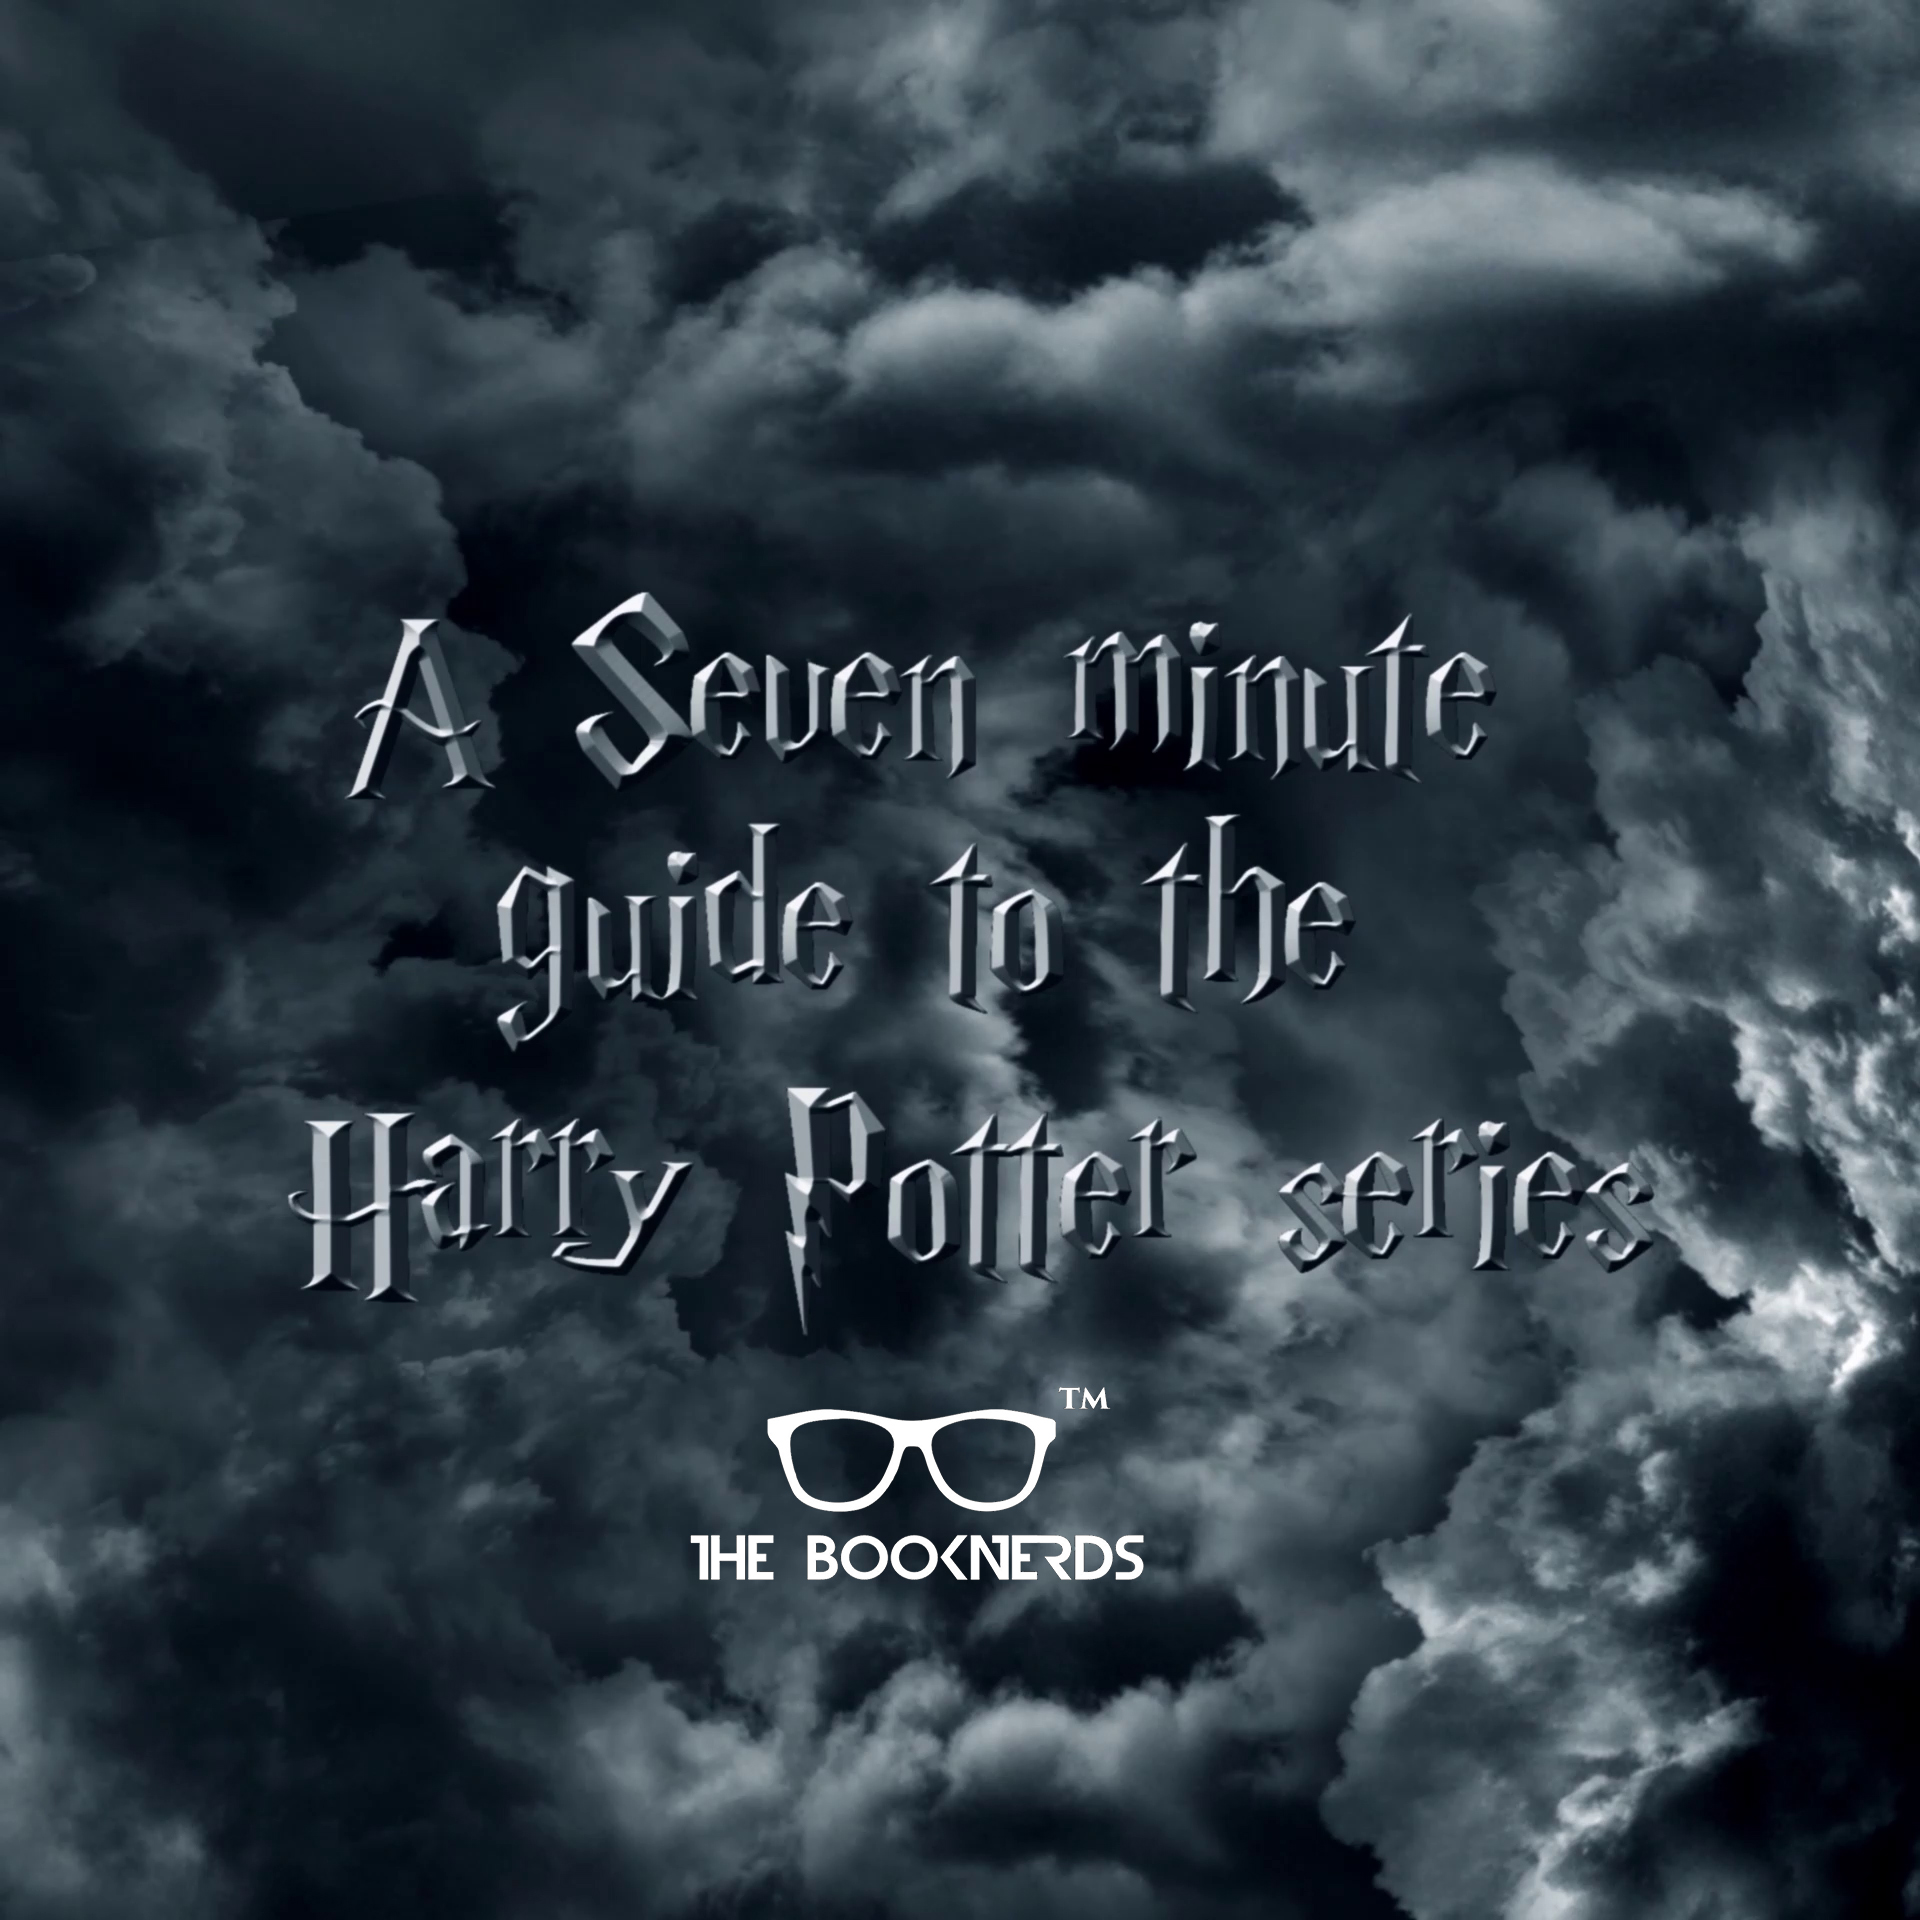 A 7-minute guide to the Harry Potter Series